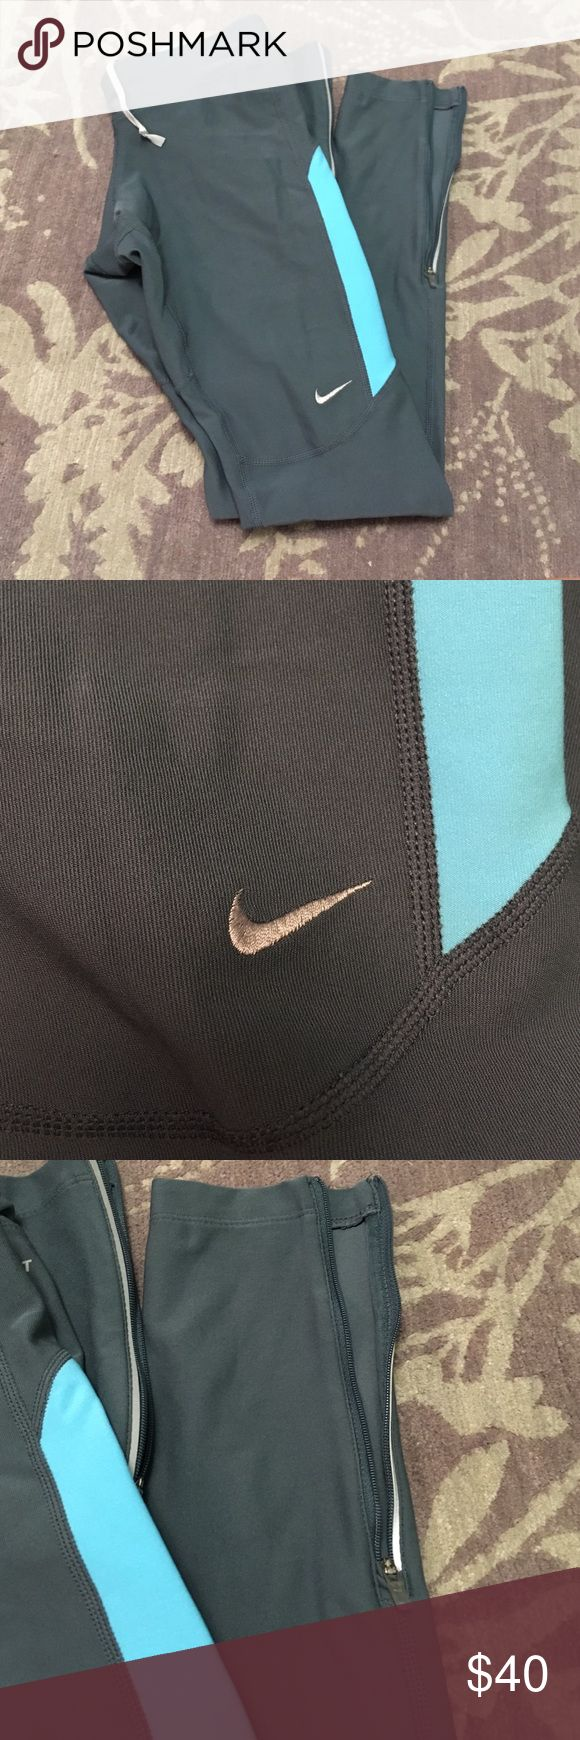 NWOT Nike Leggings brand new nike legging without the tag. I just didn't like how they fit me! Have zippers at the ankle. Nike Pants Leggings